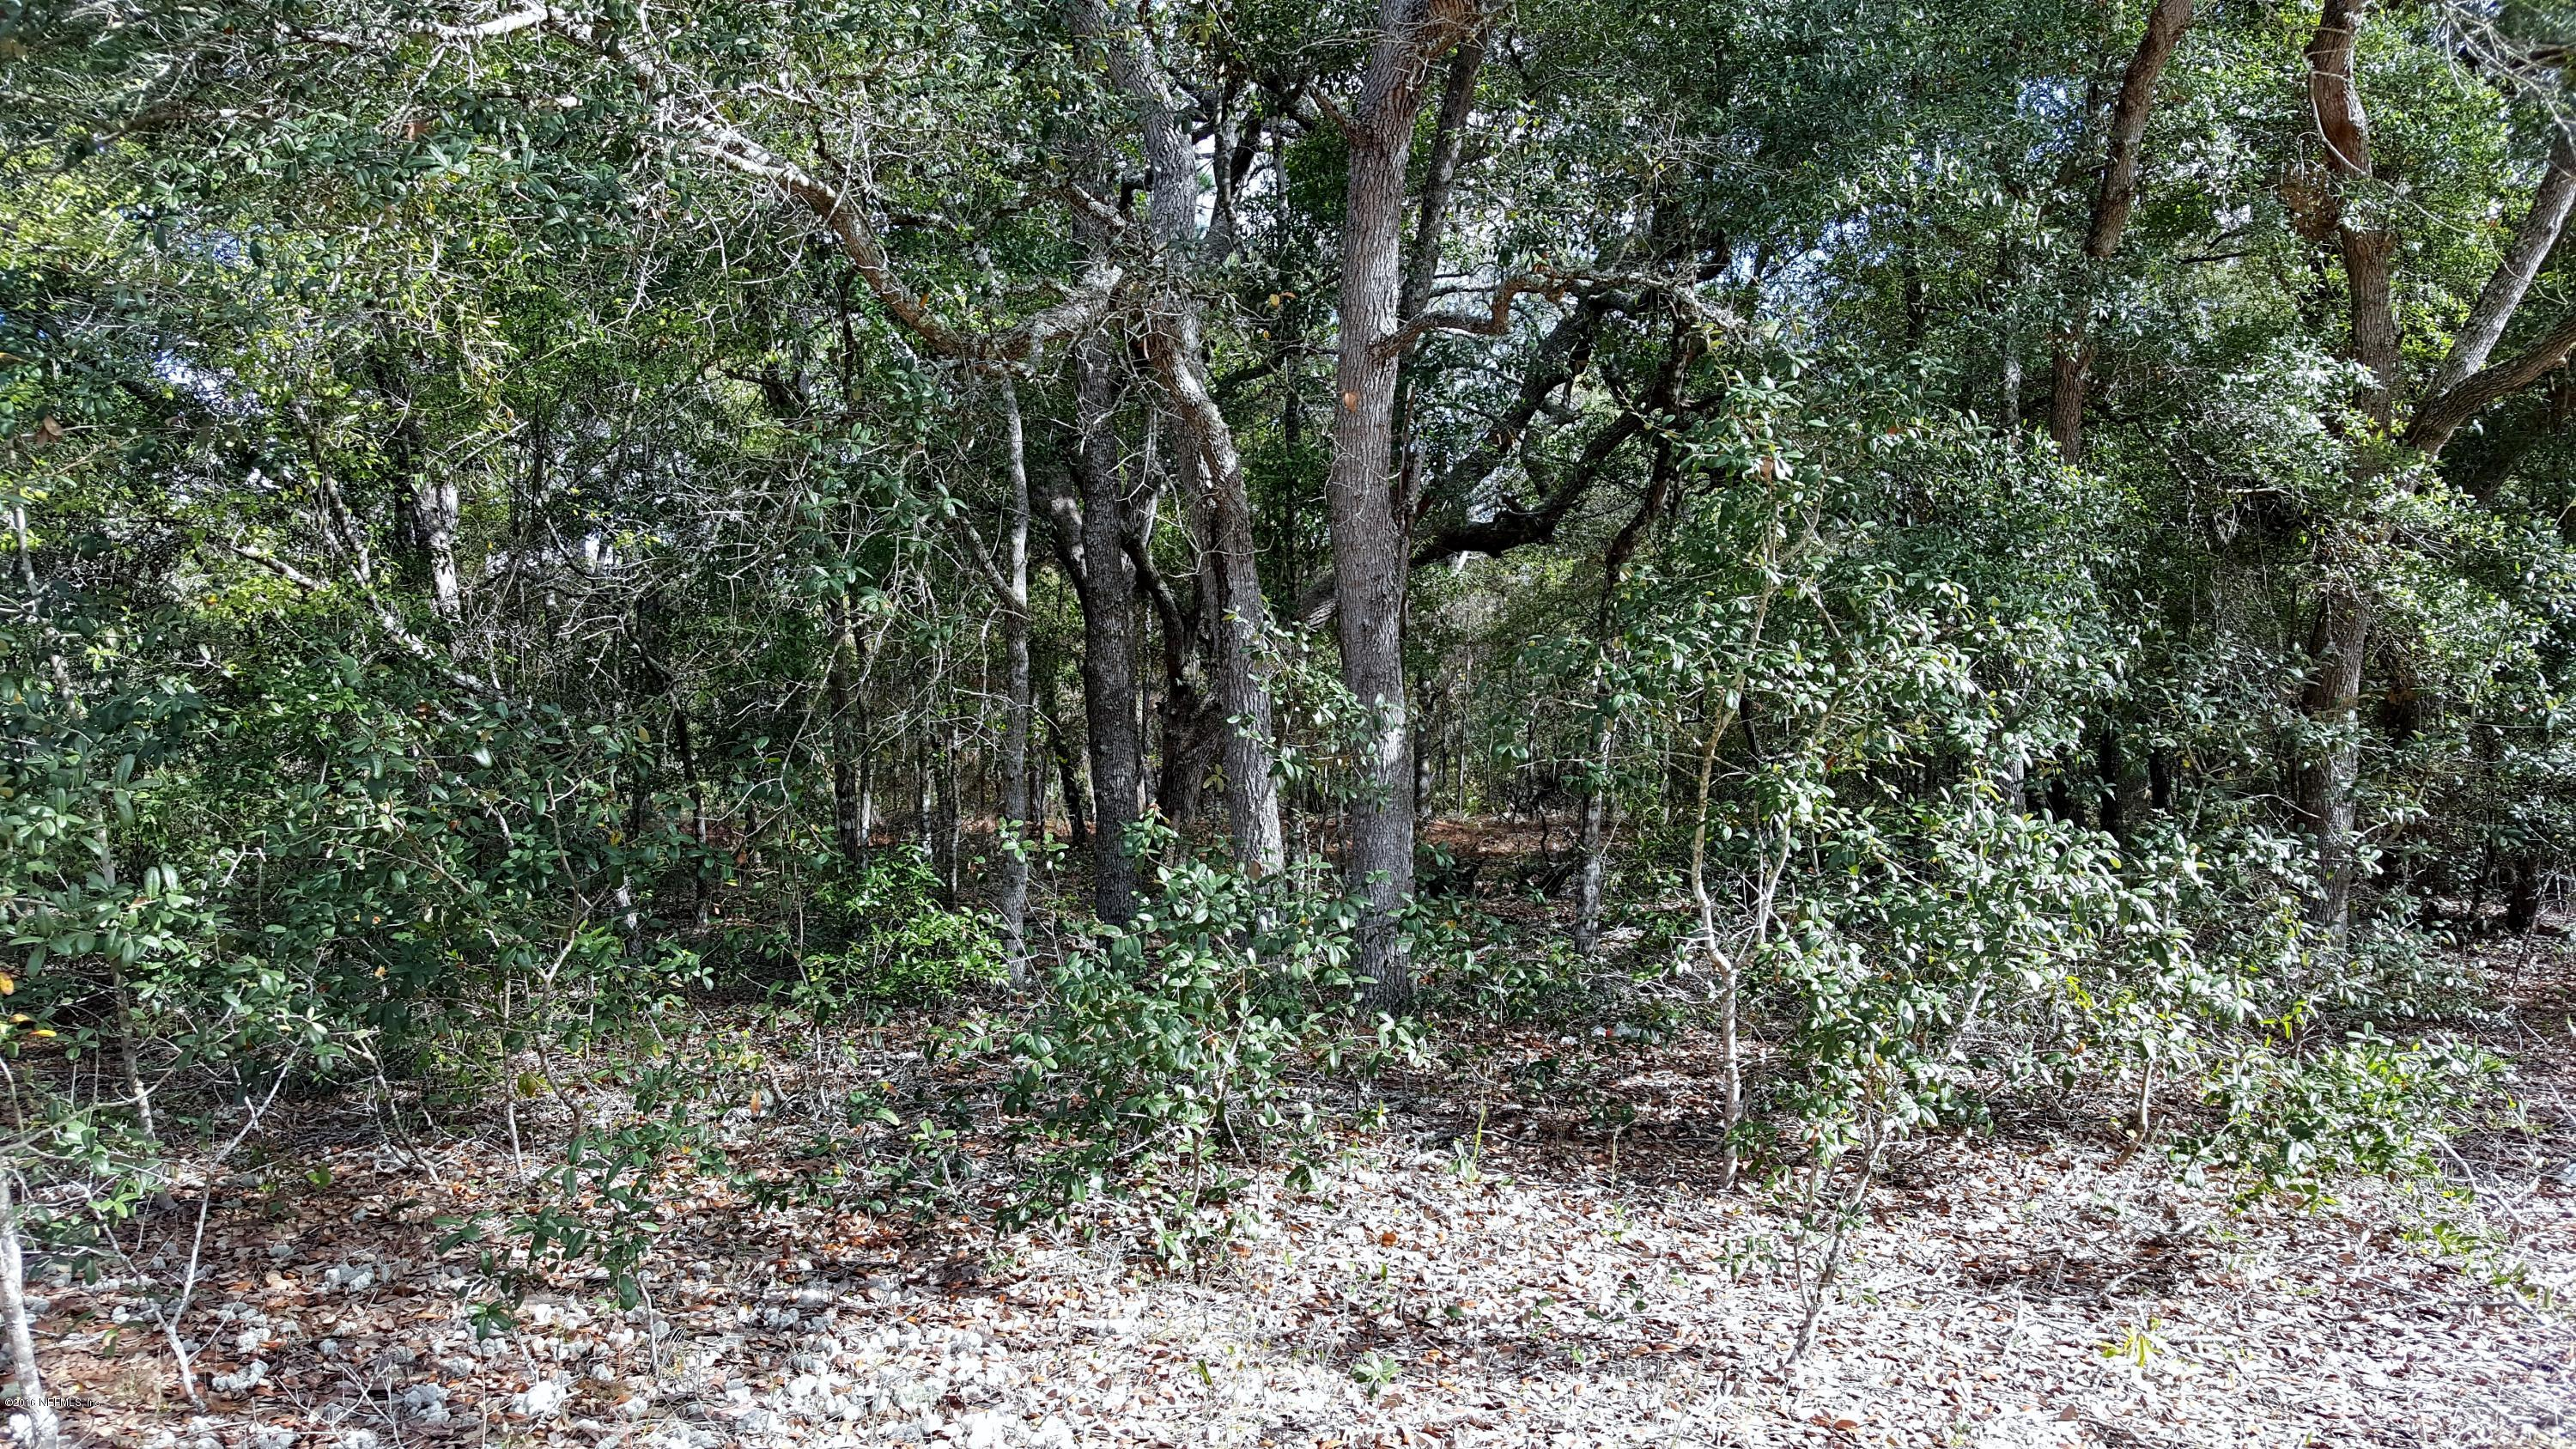 0000 13TH ST, INTERLACHEN, FLORIDA 32148, ,Vacant land,For sale,13TH ST,854257